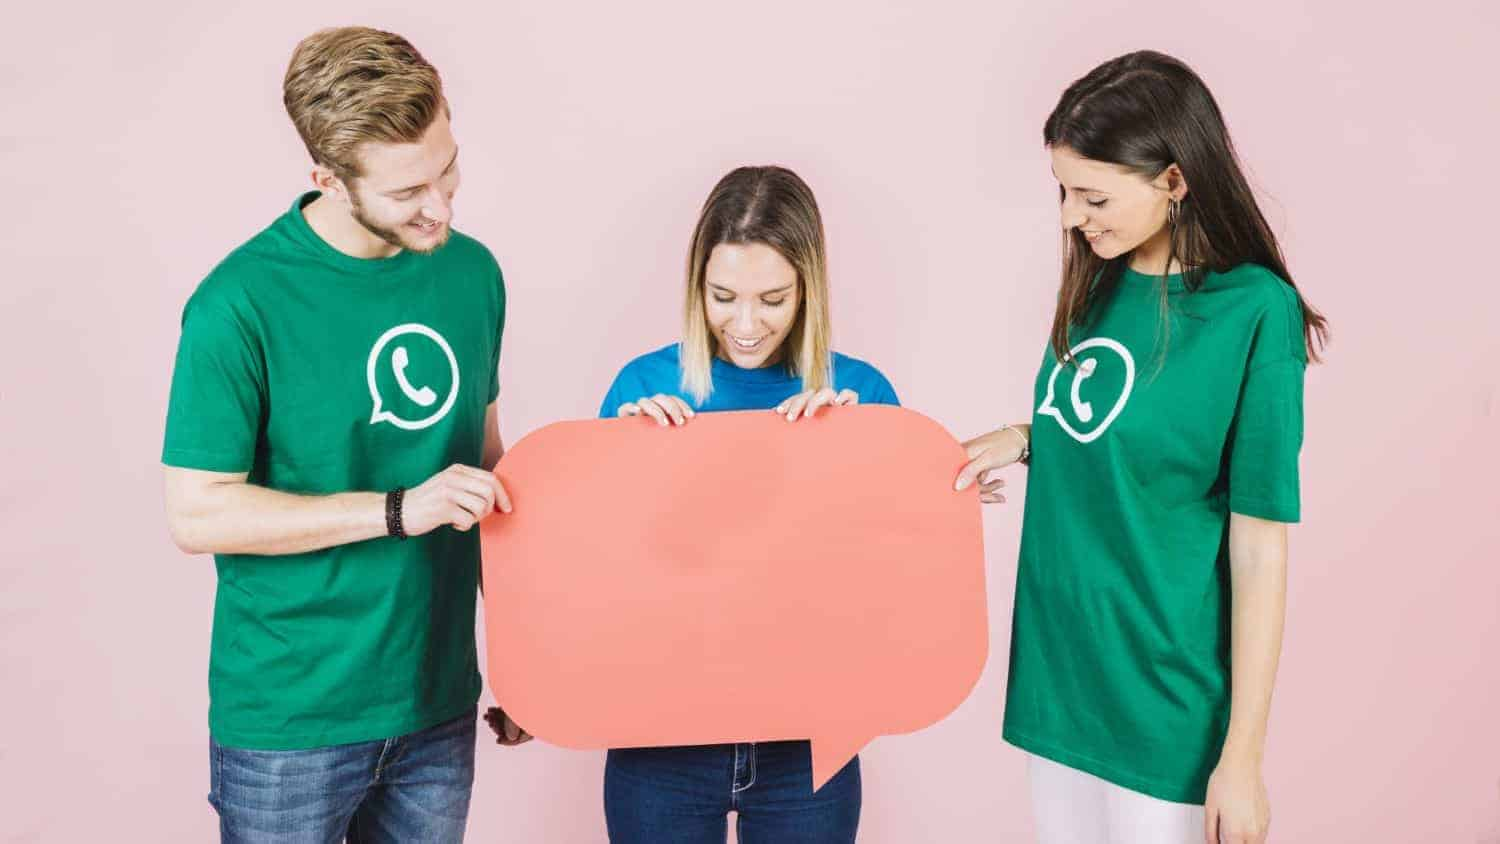 WhatsApp introduces new Click-to-chat advertisements